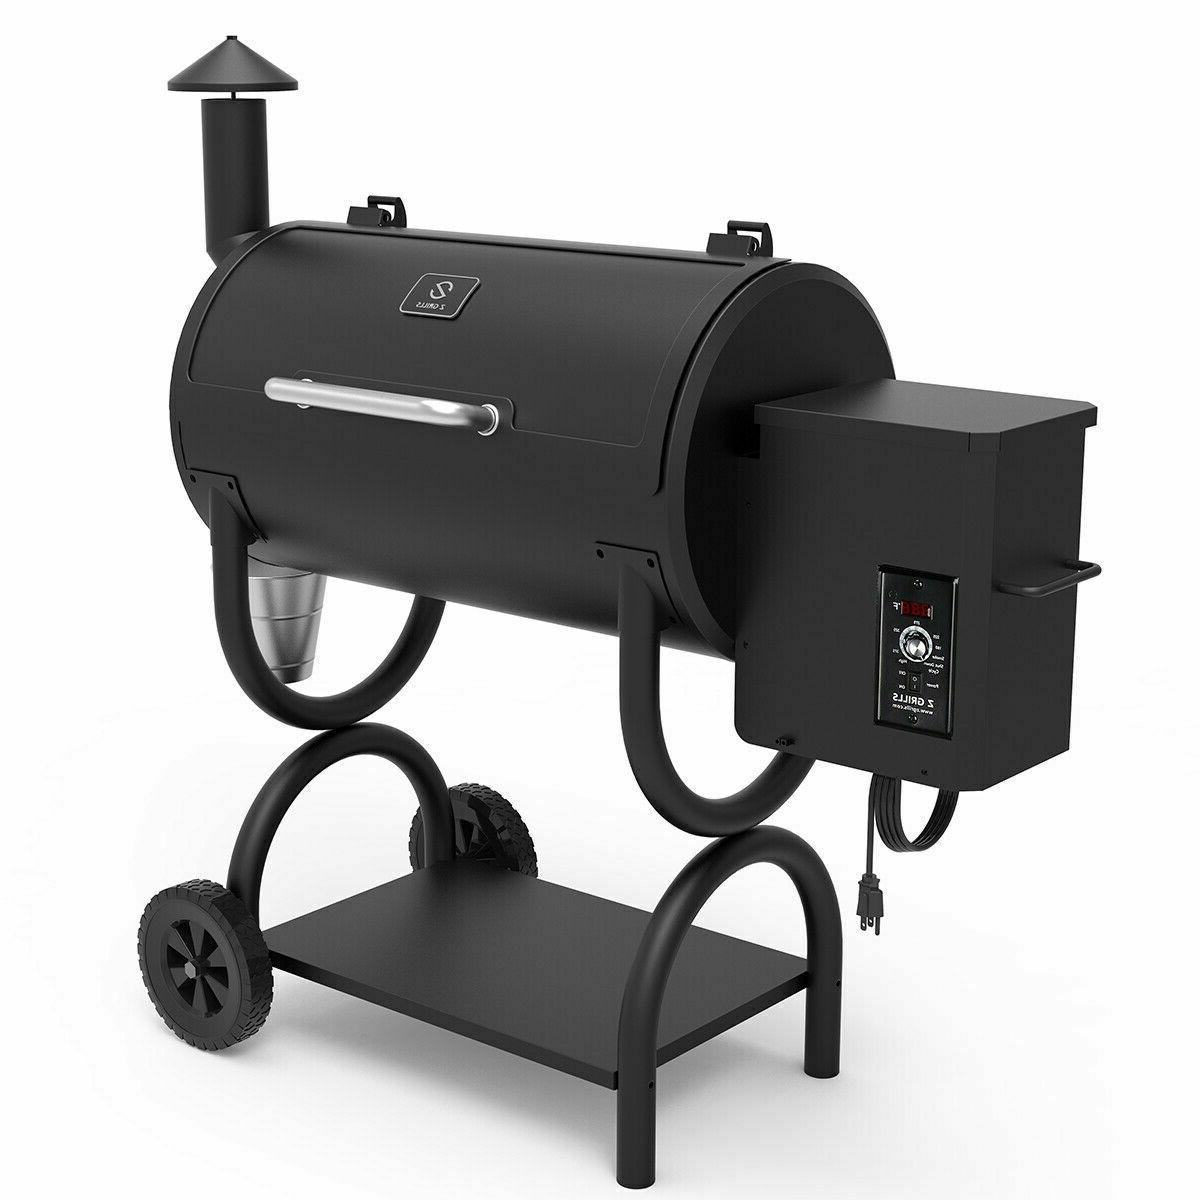 Z GRILLS Wood Grill and Smoker Backyard Digital